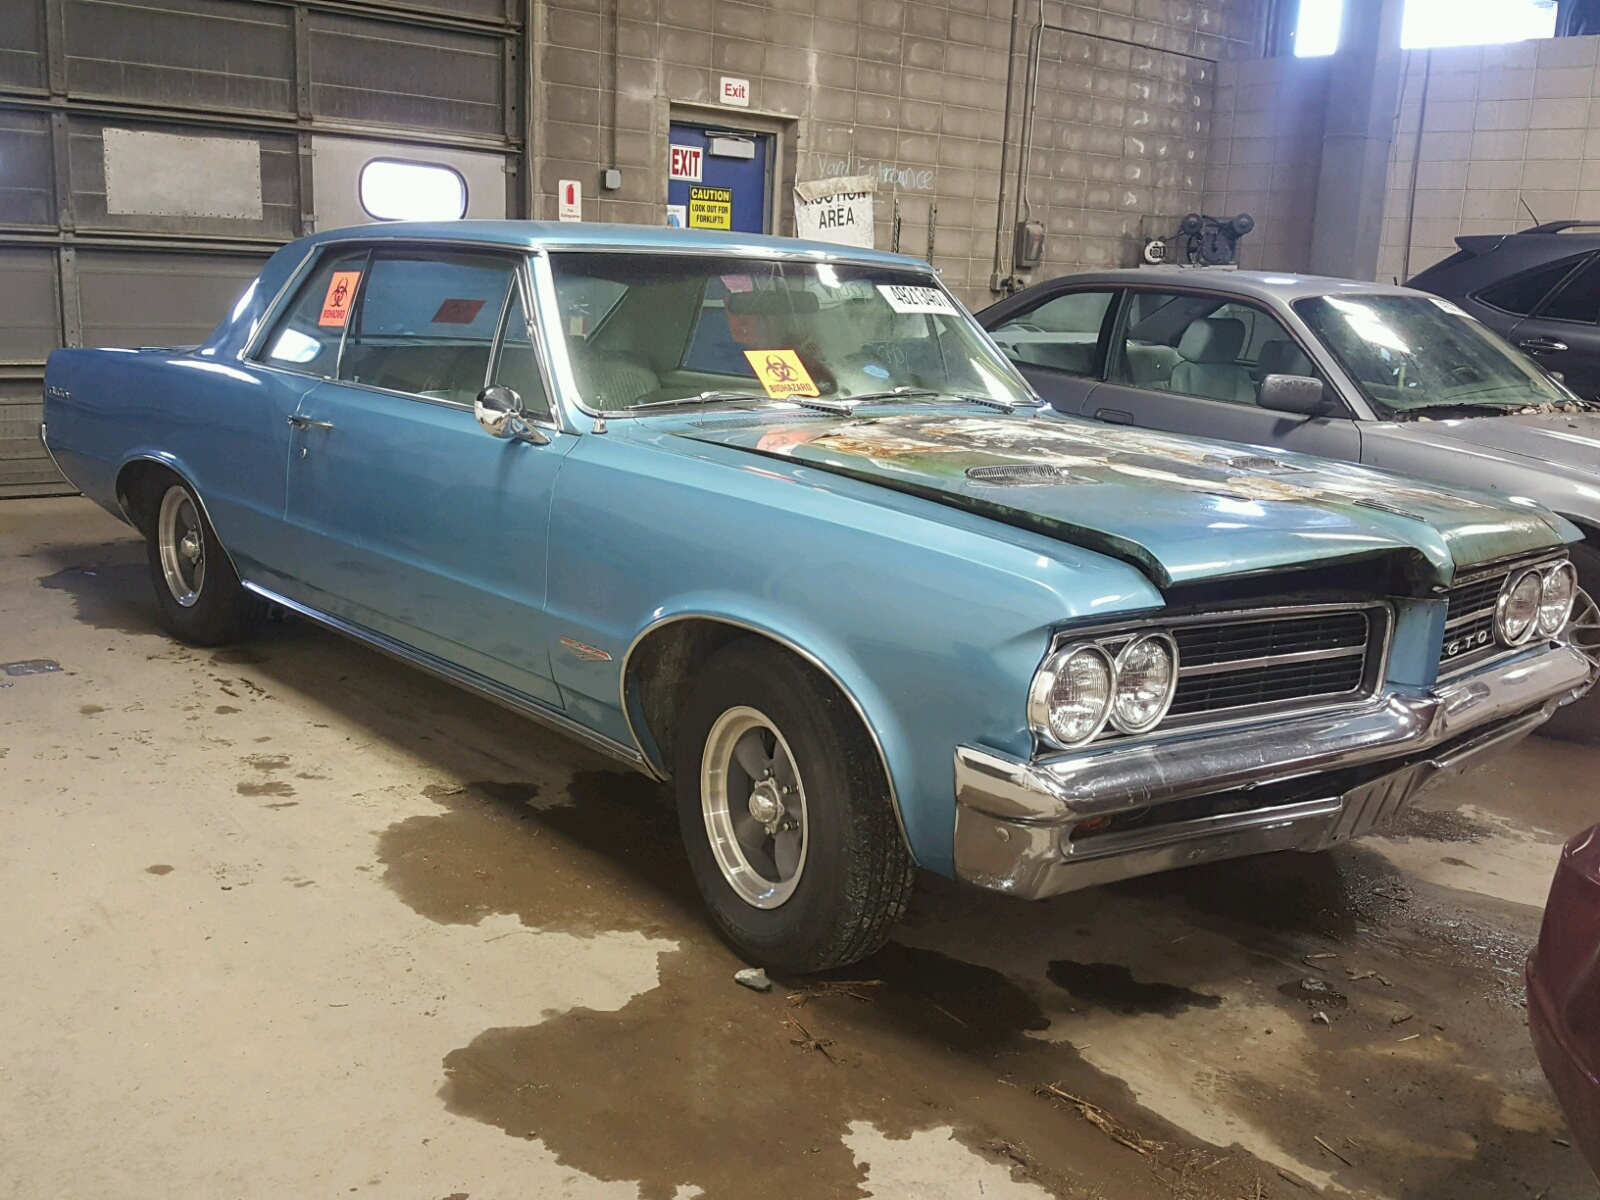 824m25209 1964 blue pontiac gto on sale in mn minneapolis lot 49213467. Black Bedroom Furniture Sets. Home Design Ideas